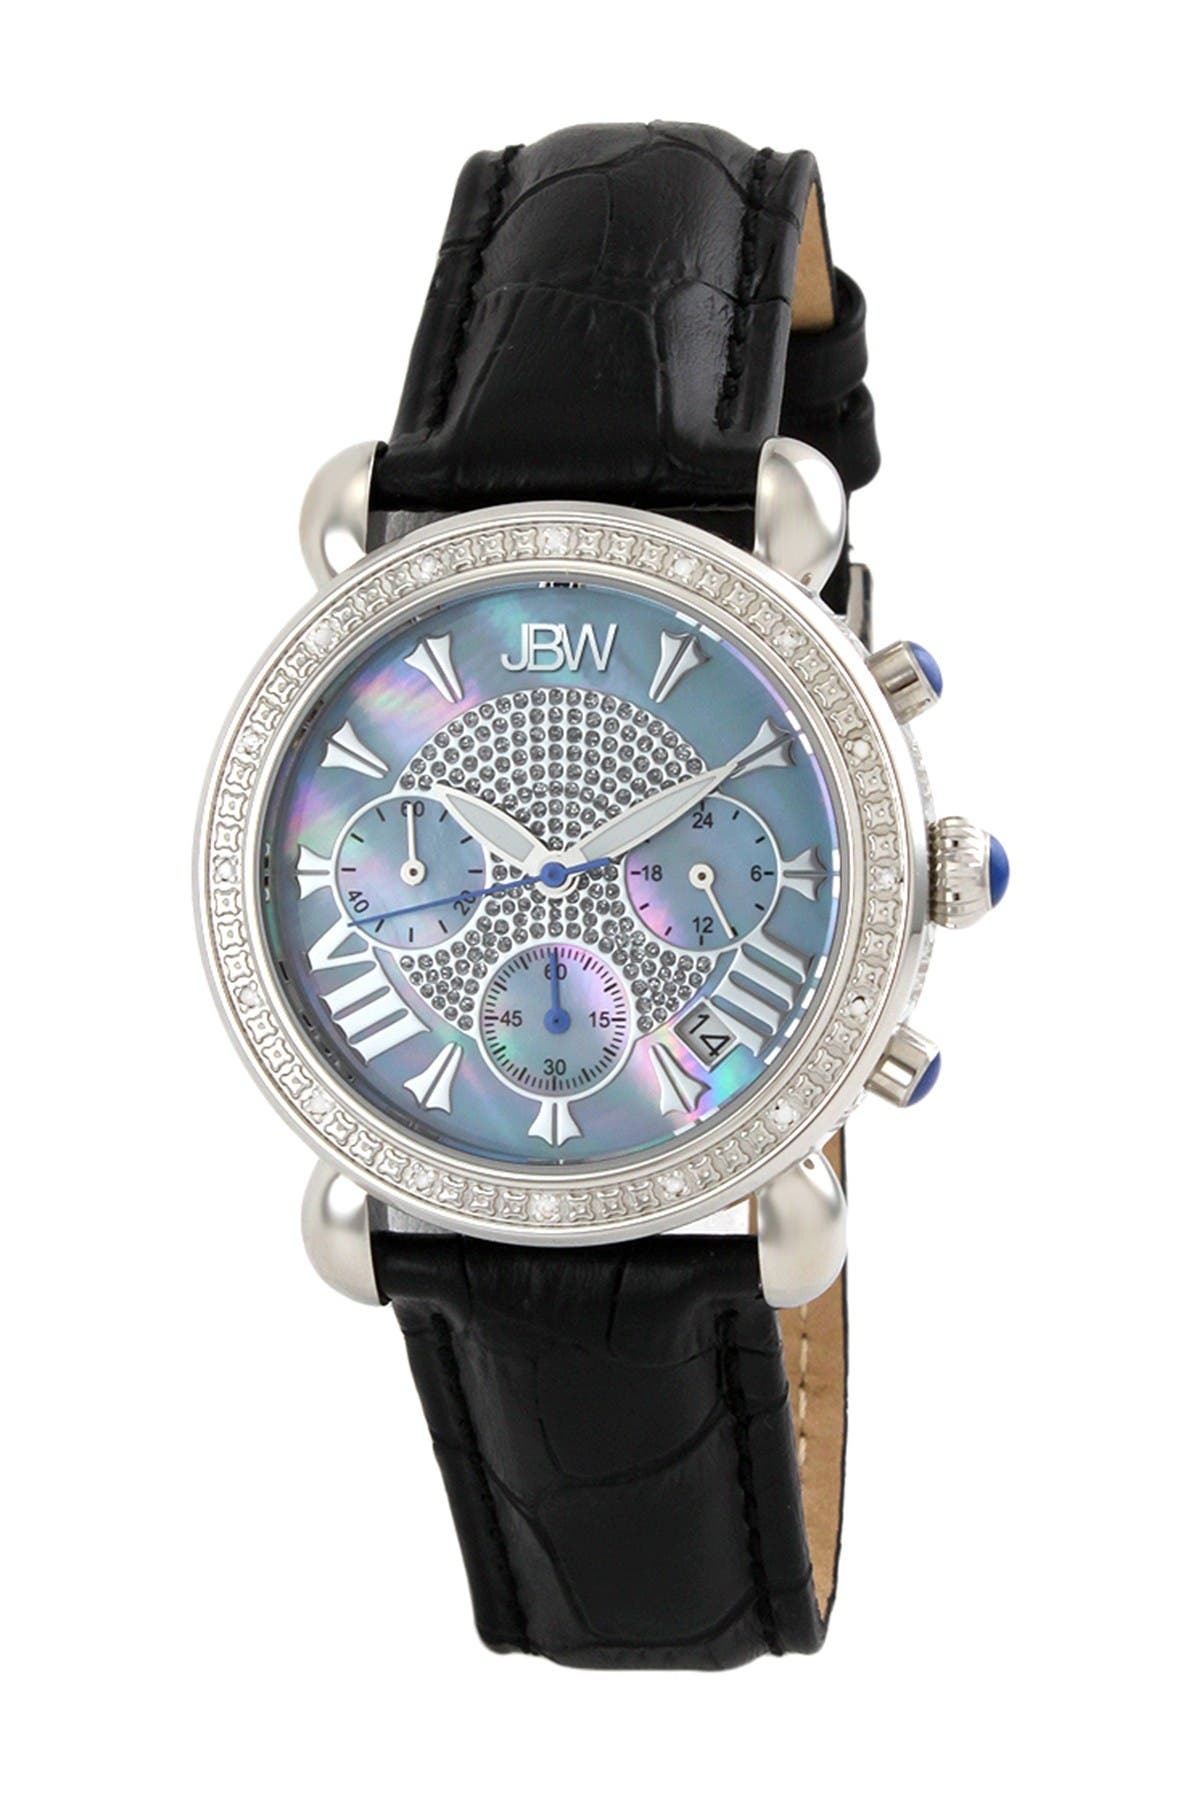 Image of JBW Women's Victory Diamond Croc Embossed Leather Strap Watch, 37mm - 0.16 ctw